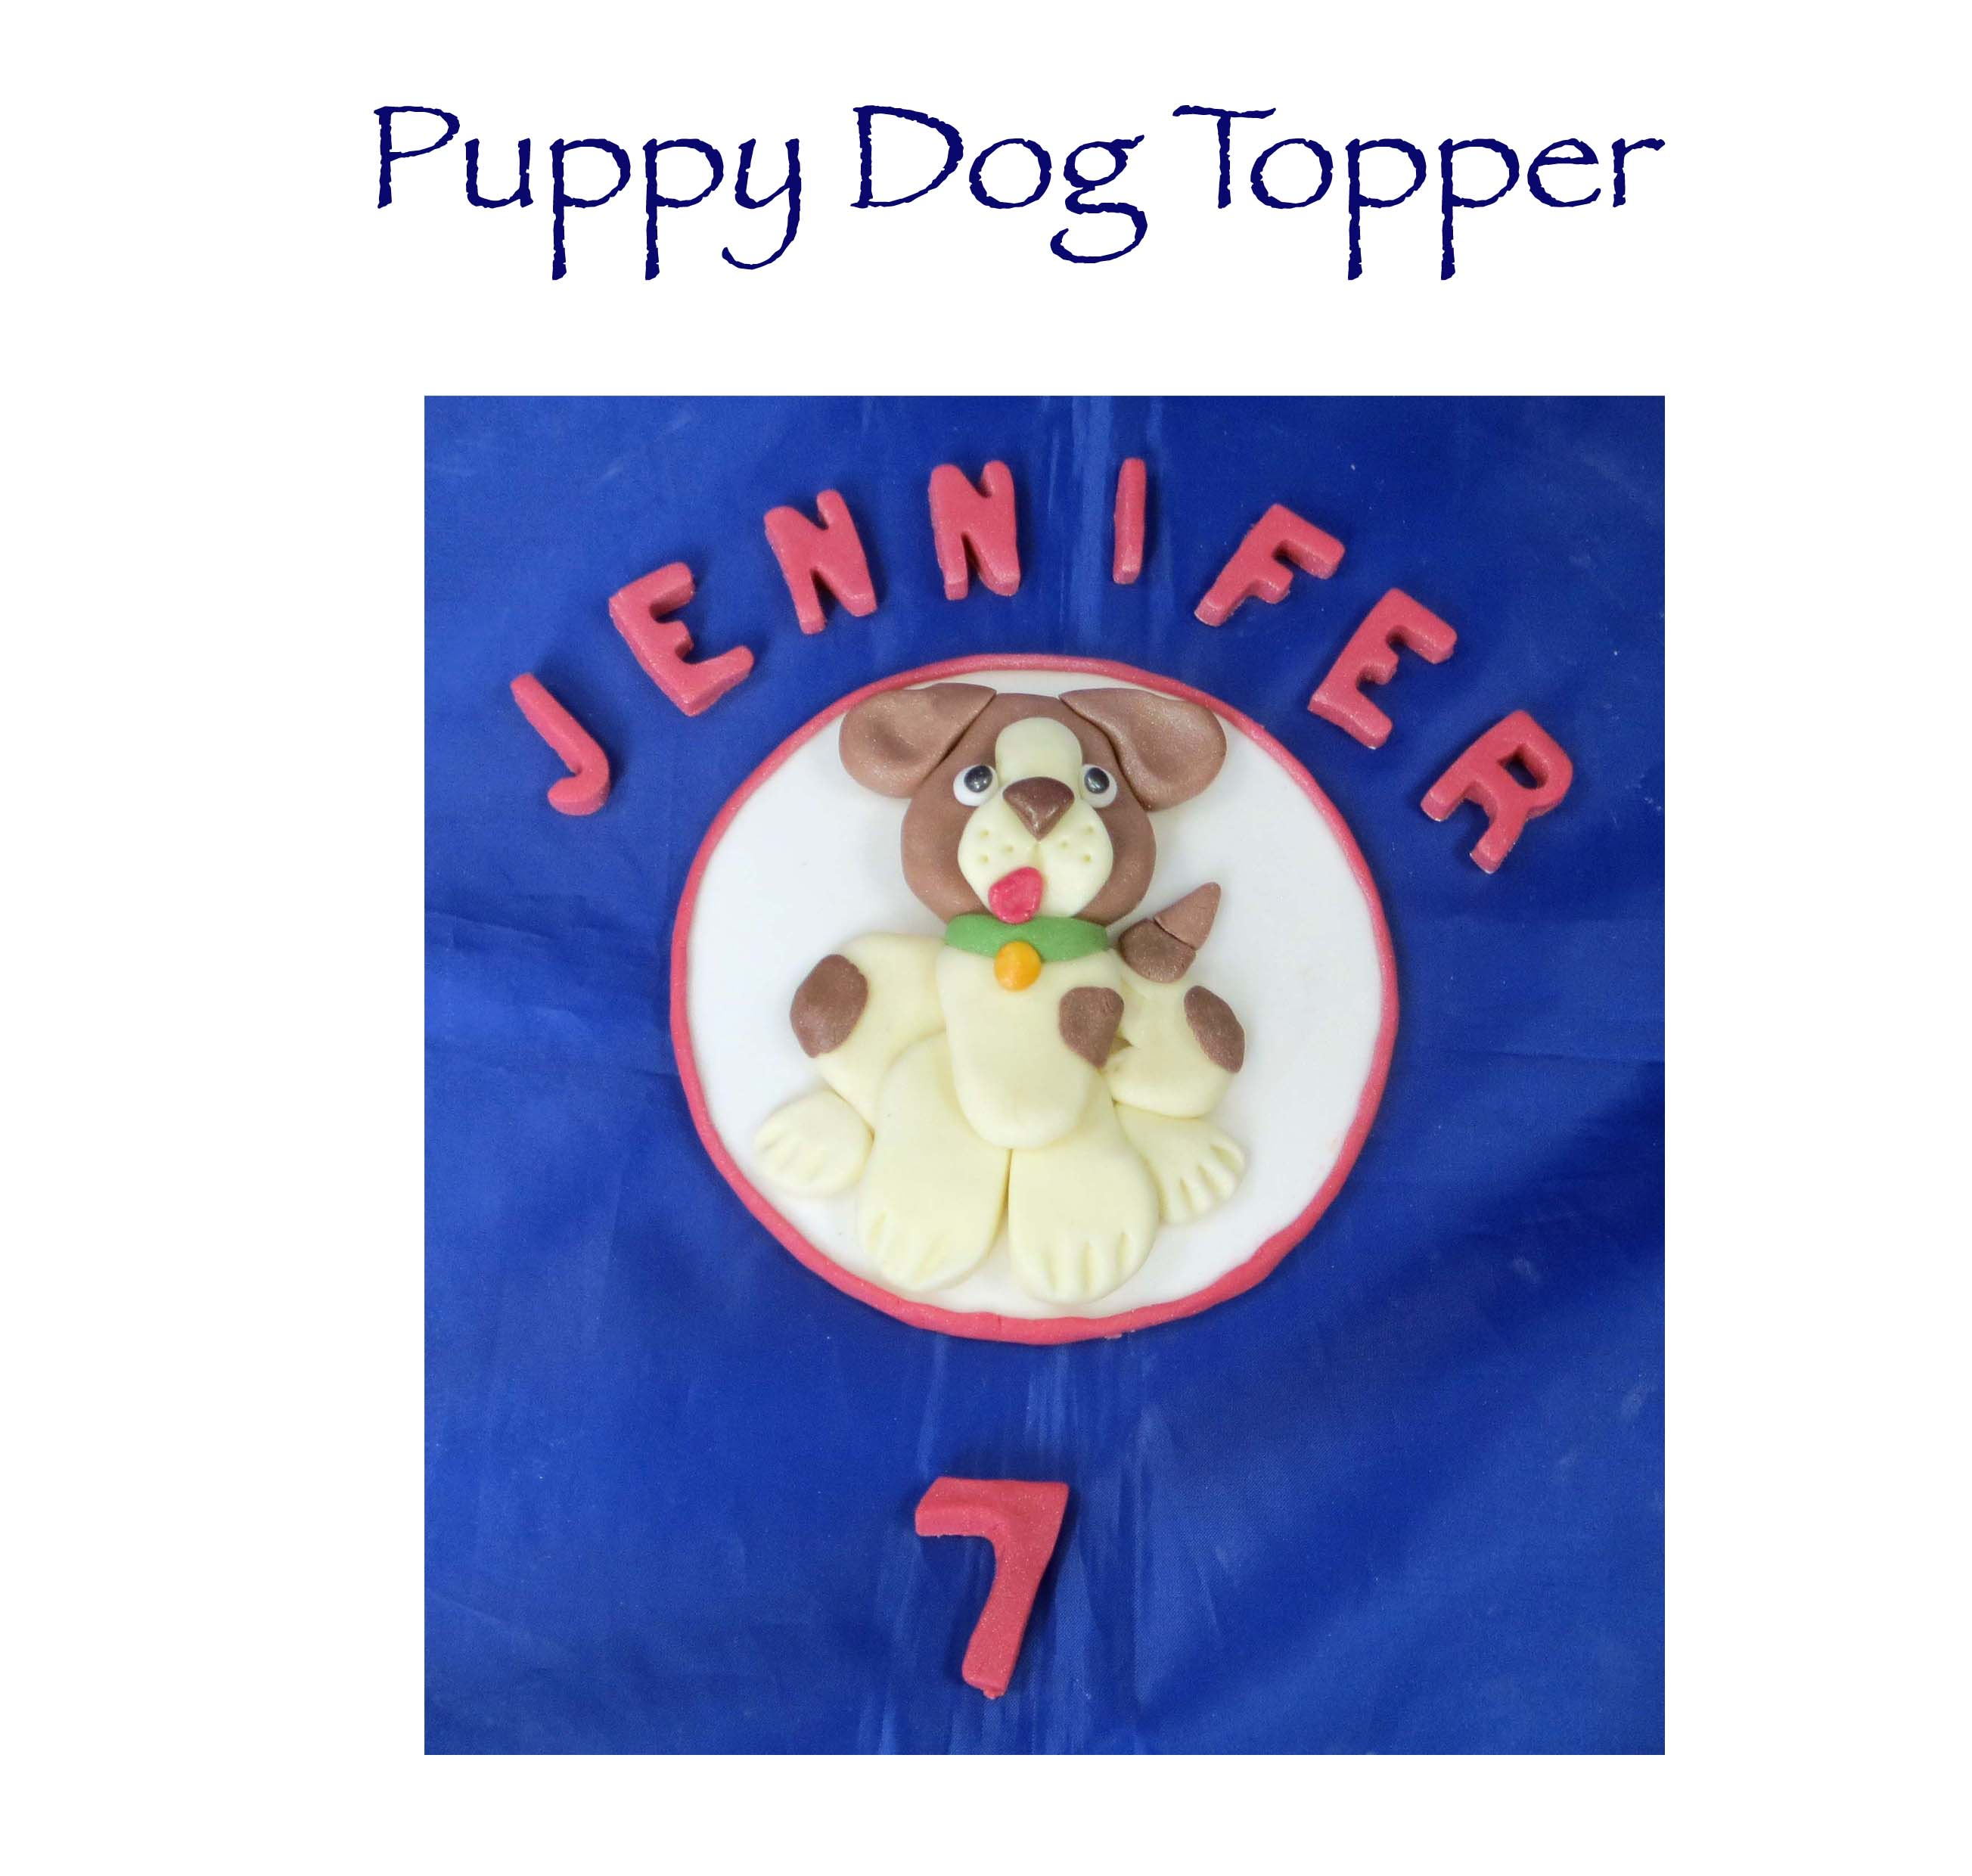 Puppy dog topper